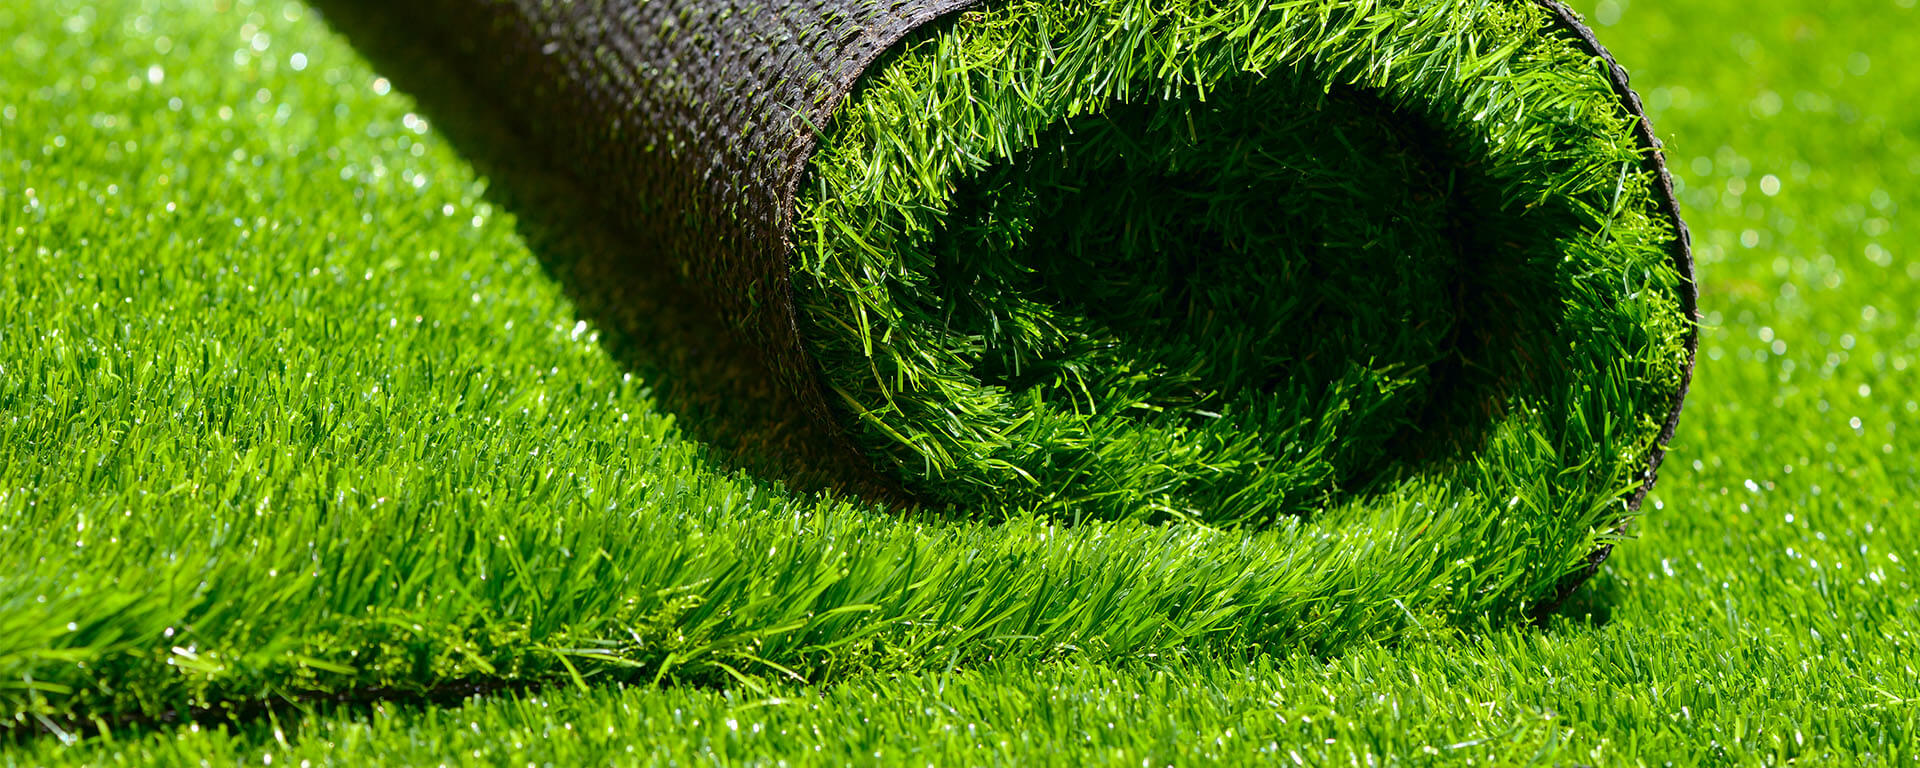 Orlando Artificial Grass Installation, Putting Green Installation and Synthetic Turf Installation